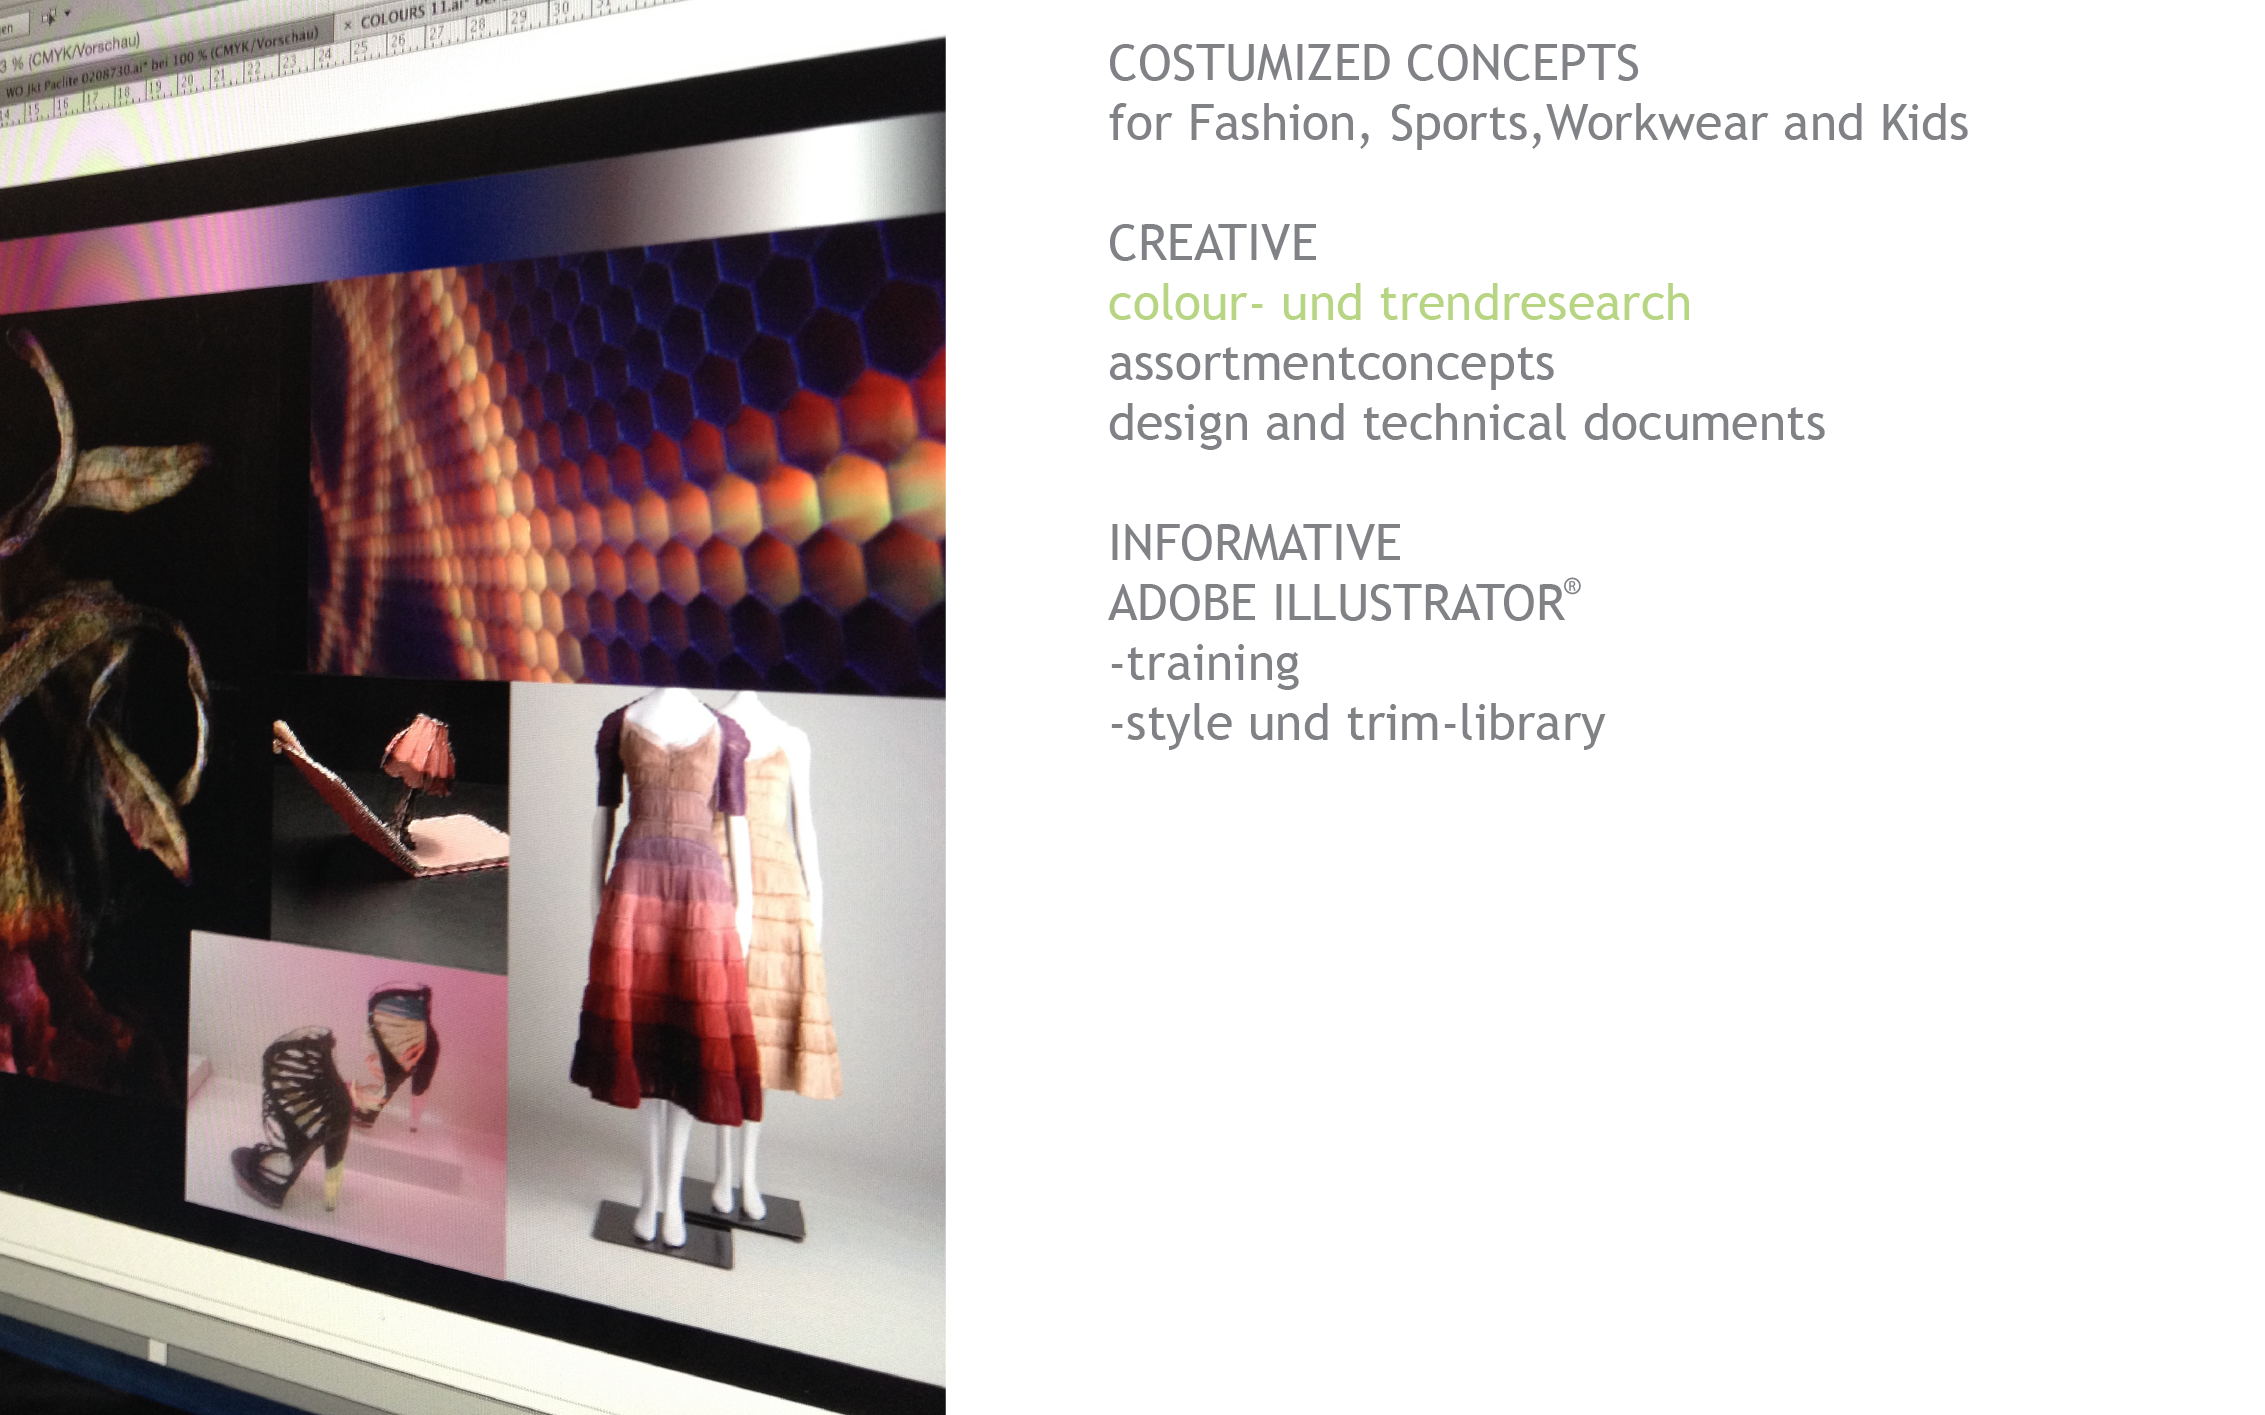 COSTUMIZED CONCEPTS